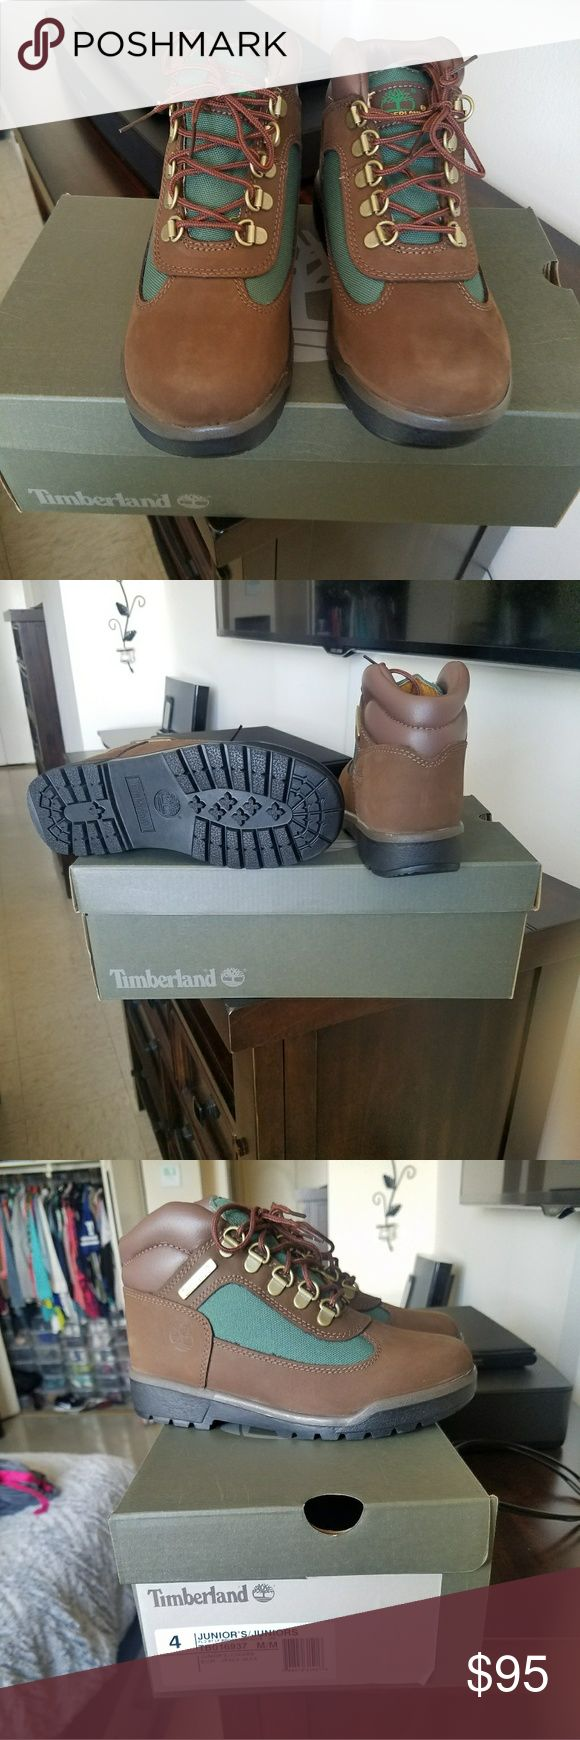 Timberland (new) Brand new in the box size 4youth so I believe it's a 5.5 to 6 in women. Timberland Shoes Winter & Rain Boots